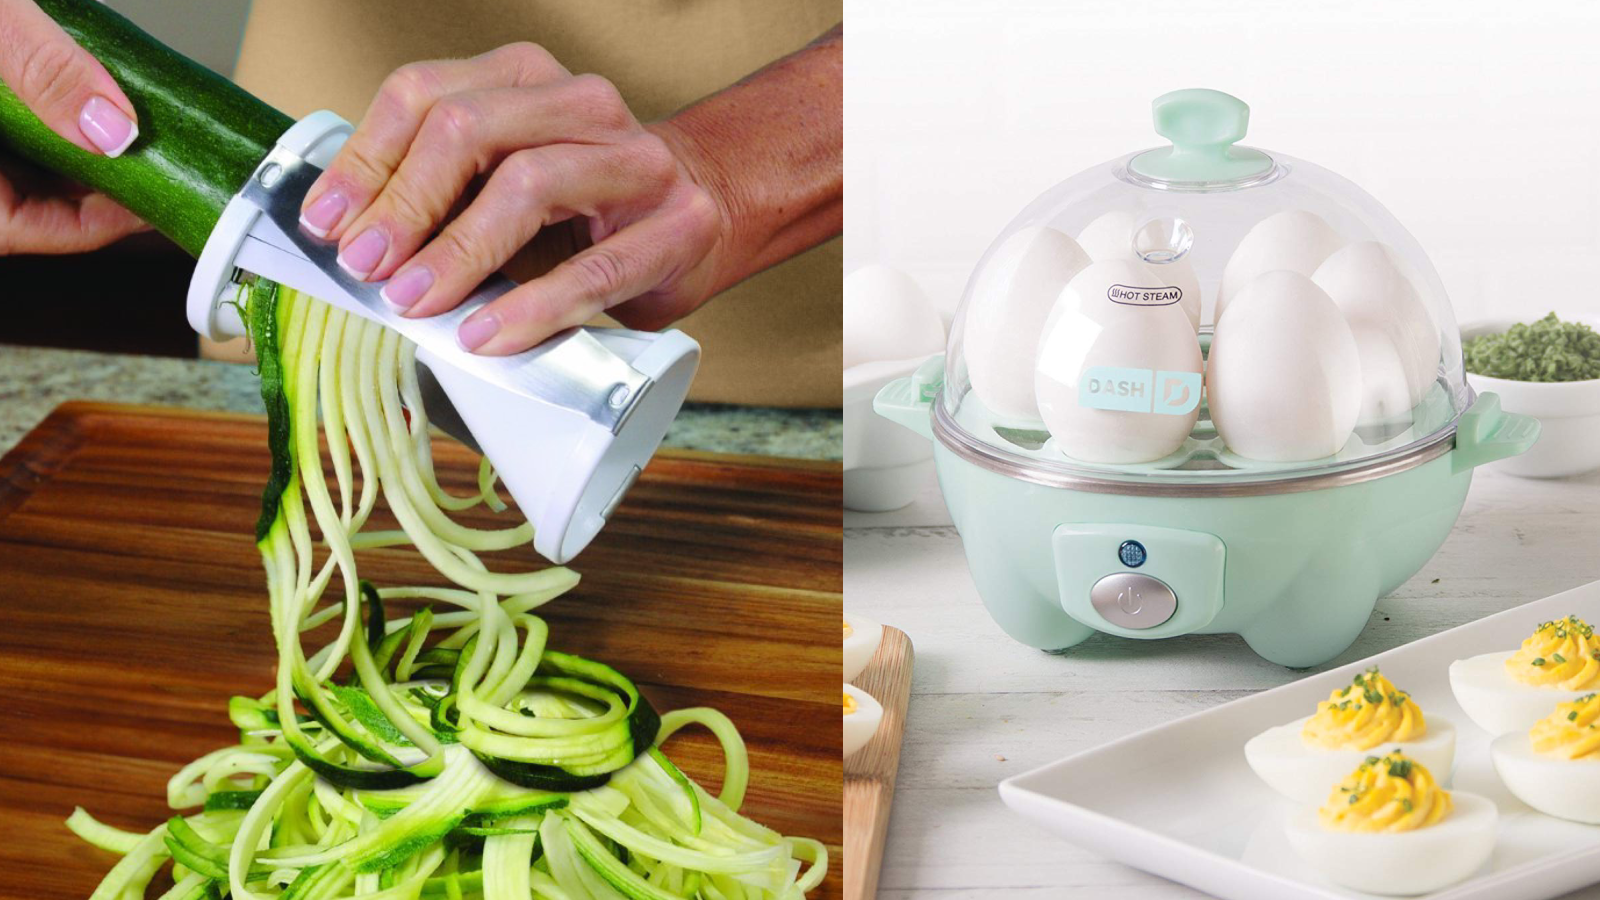 24 kitchen gadgets under $20 you'll actually use